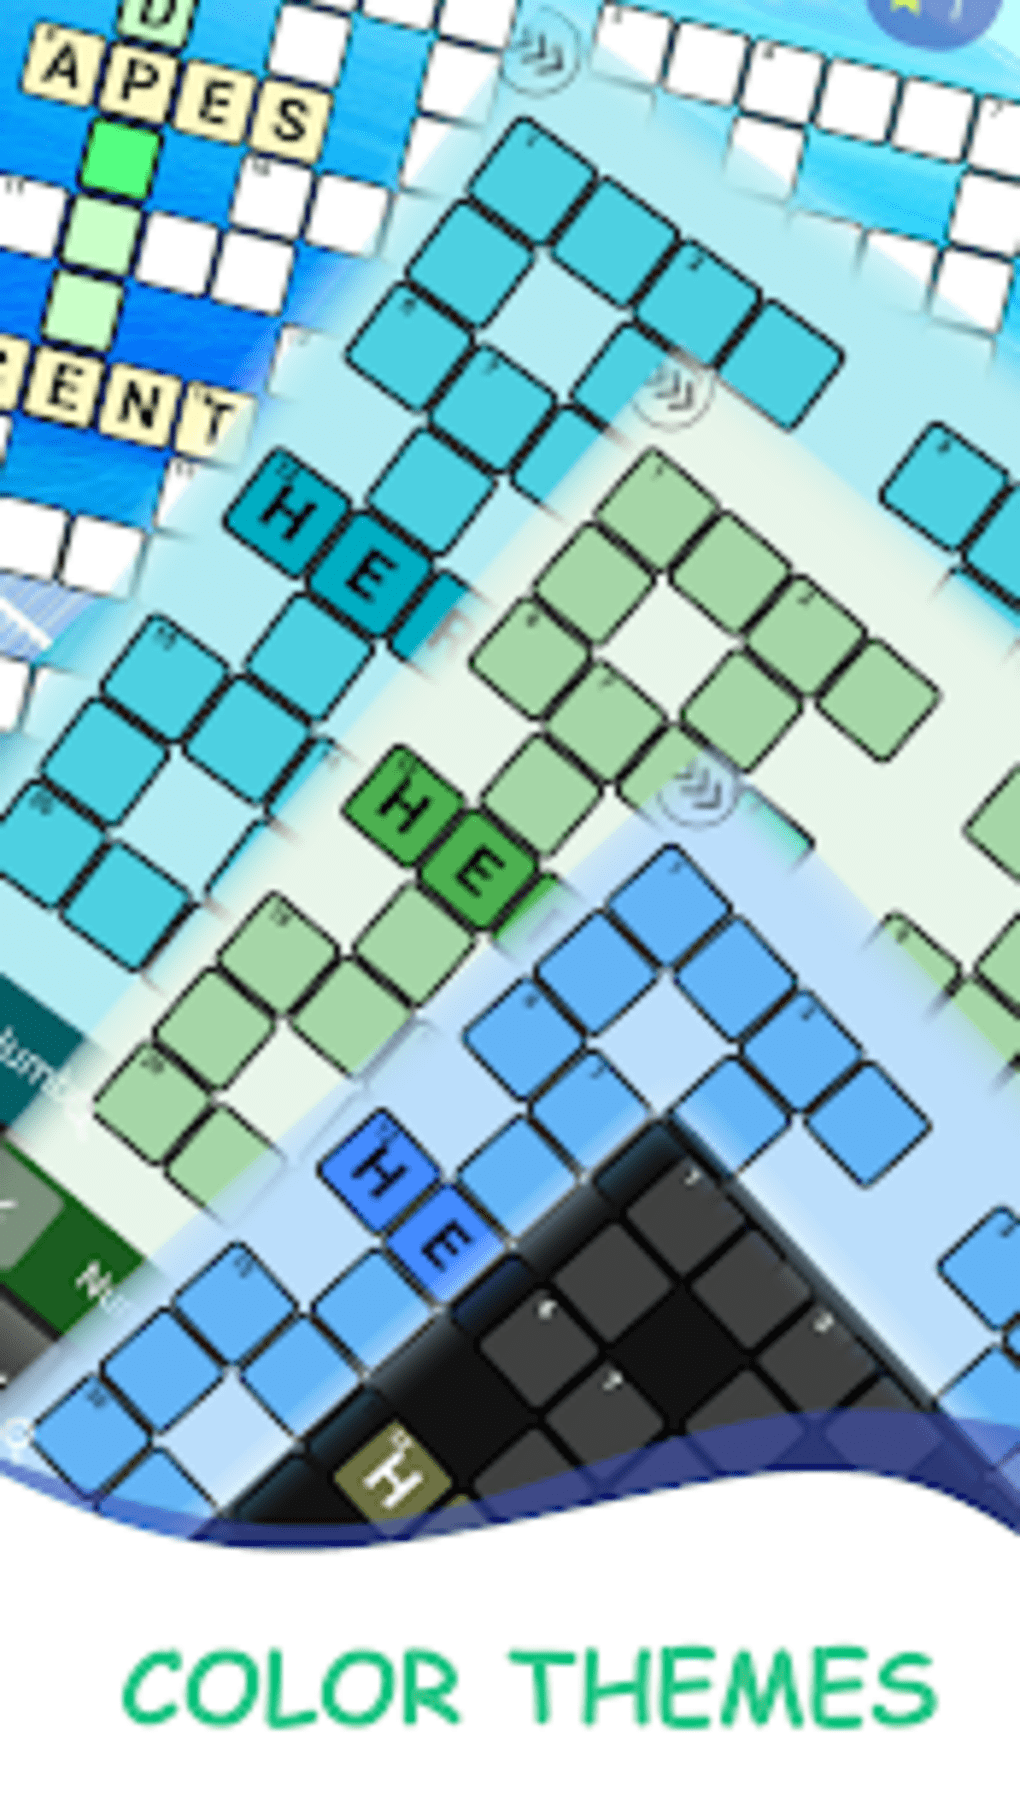 English Crossword Puzzle For Android Download